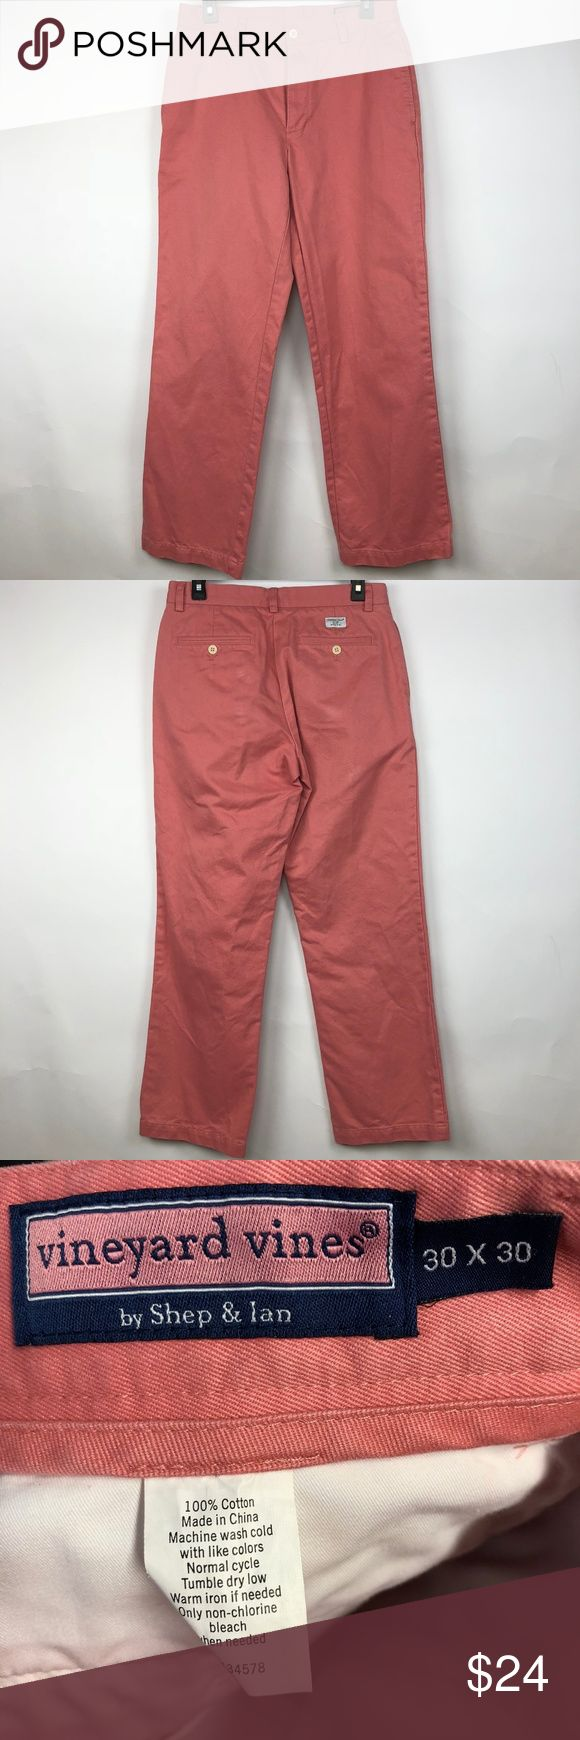 Vineyard Vines Men's Salmon Pink Pants 30 X 30 Thanks for stopping by at OneManlyShop!!!!  Item: Vineyard Vines Mens 30 X 30 Salmon Pink Cotton club Pants slacks trousers  Condition: In excellent used condition.  Please refer to images for more details about this item. If you have any questions please feel free to ask. Vineyard Vines Pants Chinos & Khakis